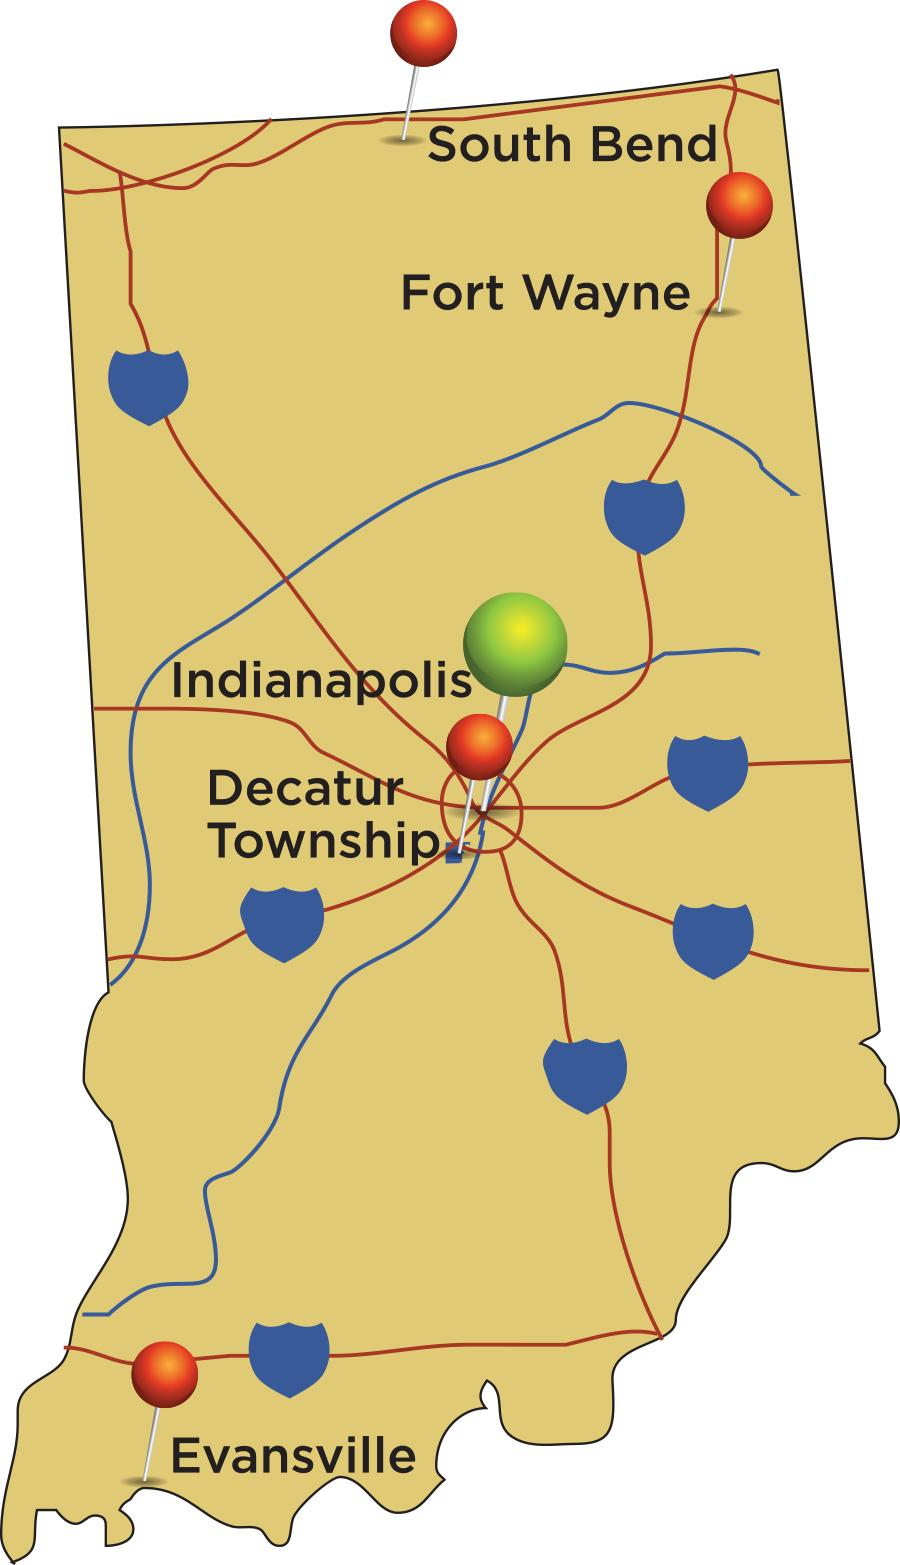 Teach with Us | Join Our Team on indianapolis school map, indianapolis cities map, indianapolis country map, indianapolis indians map, indianapolis ward map, indianapolis ohio map, indianapolis acres map, indianapolis water map, indianapolis education map, indiana government center north map, indianapolis districts, indianapolis zoning map, indianapolis zip code map, indianapolis precinct map, indianapolis townships by zip code, indianapolis street numbers, indianapolis construction map, indianapolis culture, indianapolis stadium map, indianapolis county map,